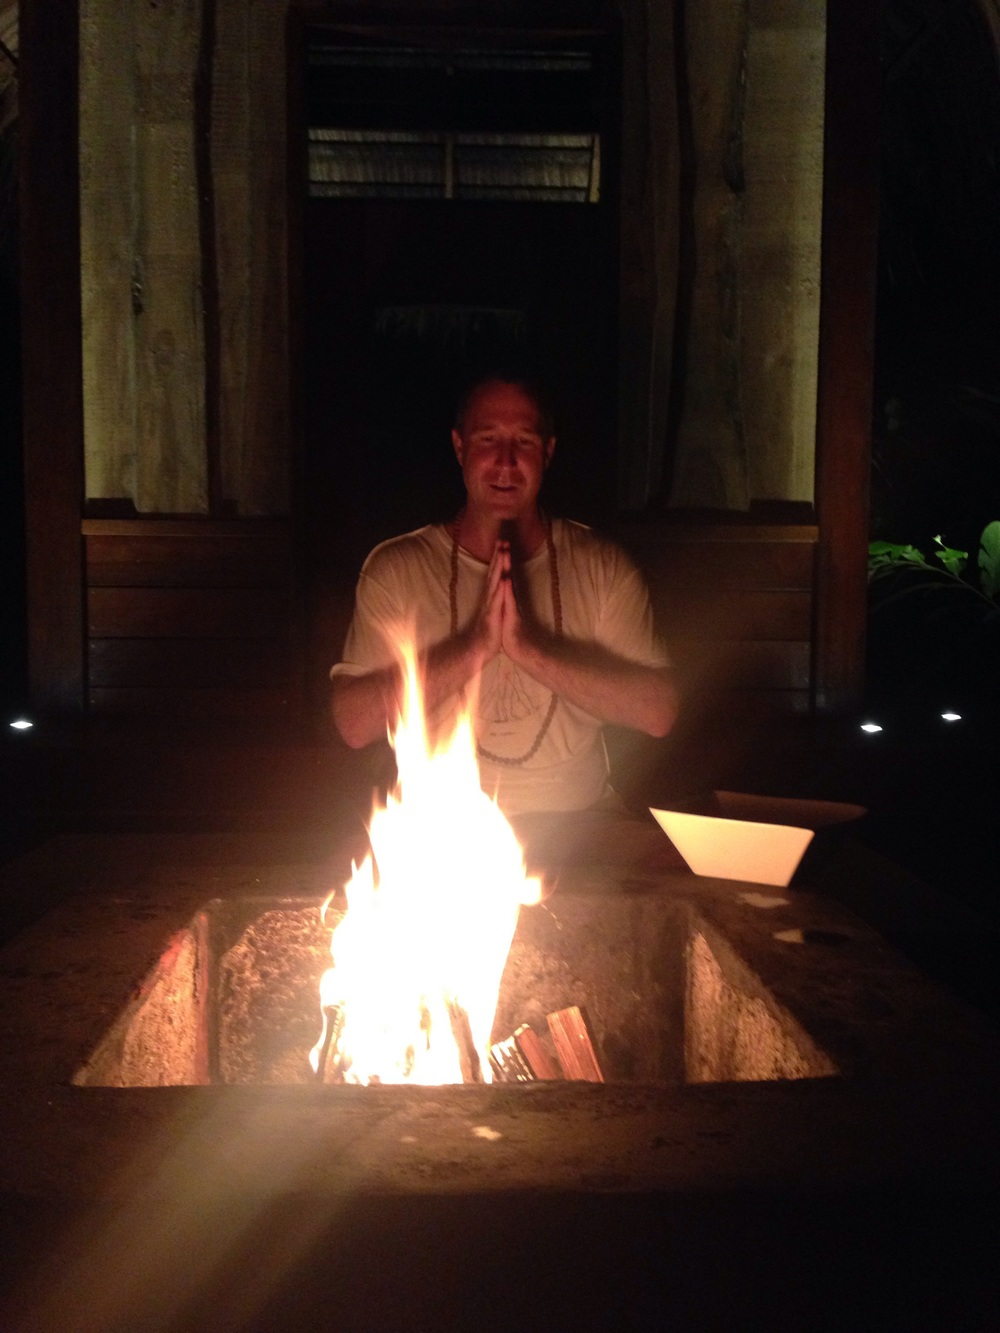 Here is our dear yogi Aaron in a photo from yesterday. It was Dan and Casey's last night here and we had an Intention Ceremony where we, in celebration of the New Year and Winter Solstice, put our intentions into the flame while chanting. It was quite powerful.  Namaste.